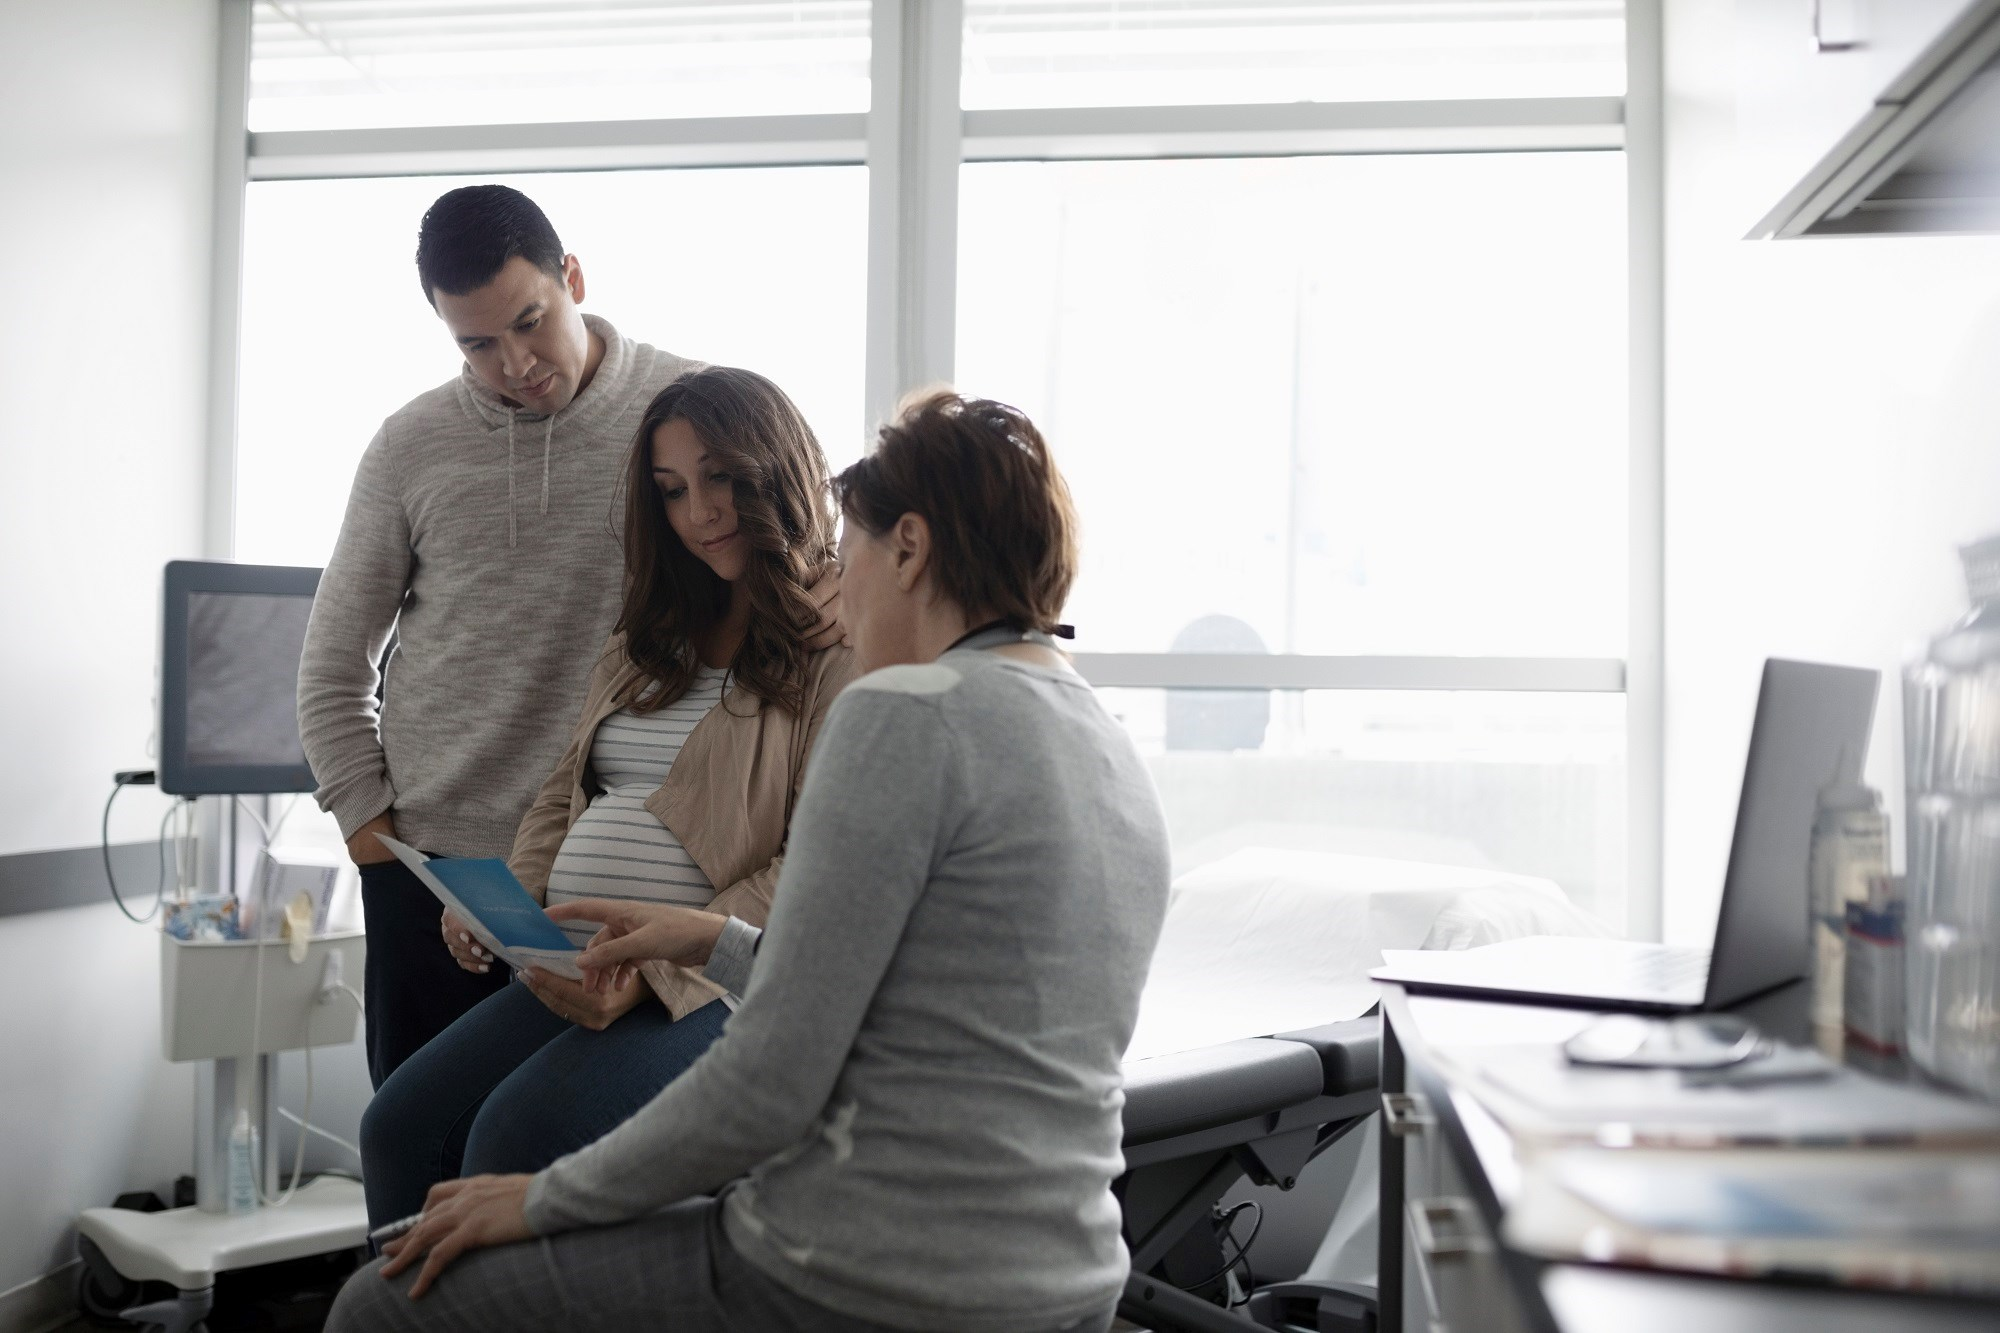 Rosalind C. Kalb, PhD, a clinical psychologist, offers her insights on how clinicians can address patient concerns about reproductive issues and MS.